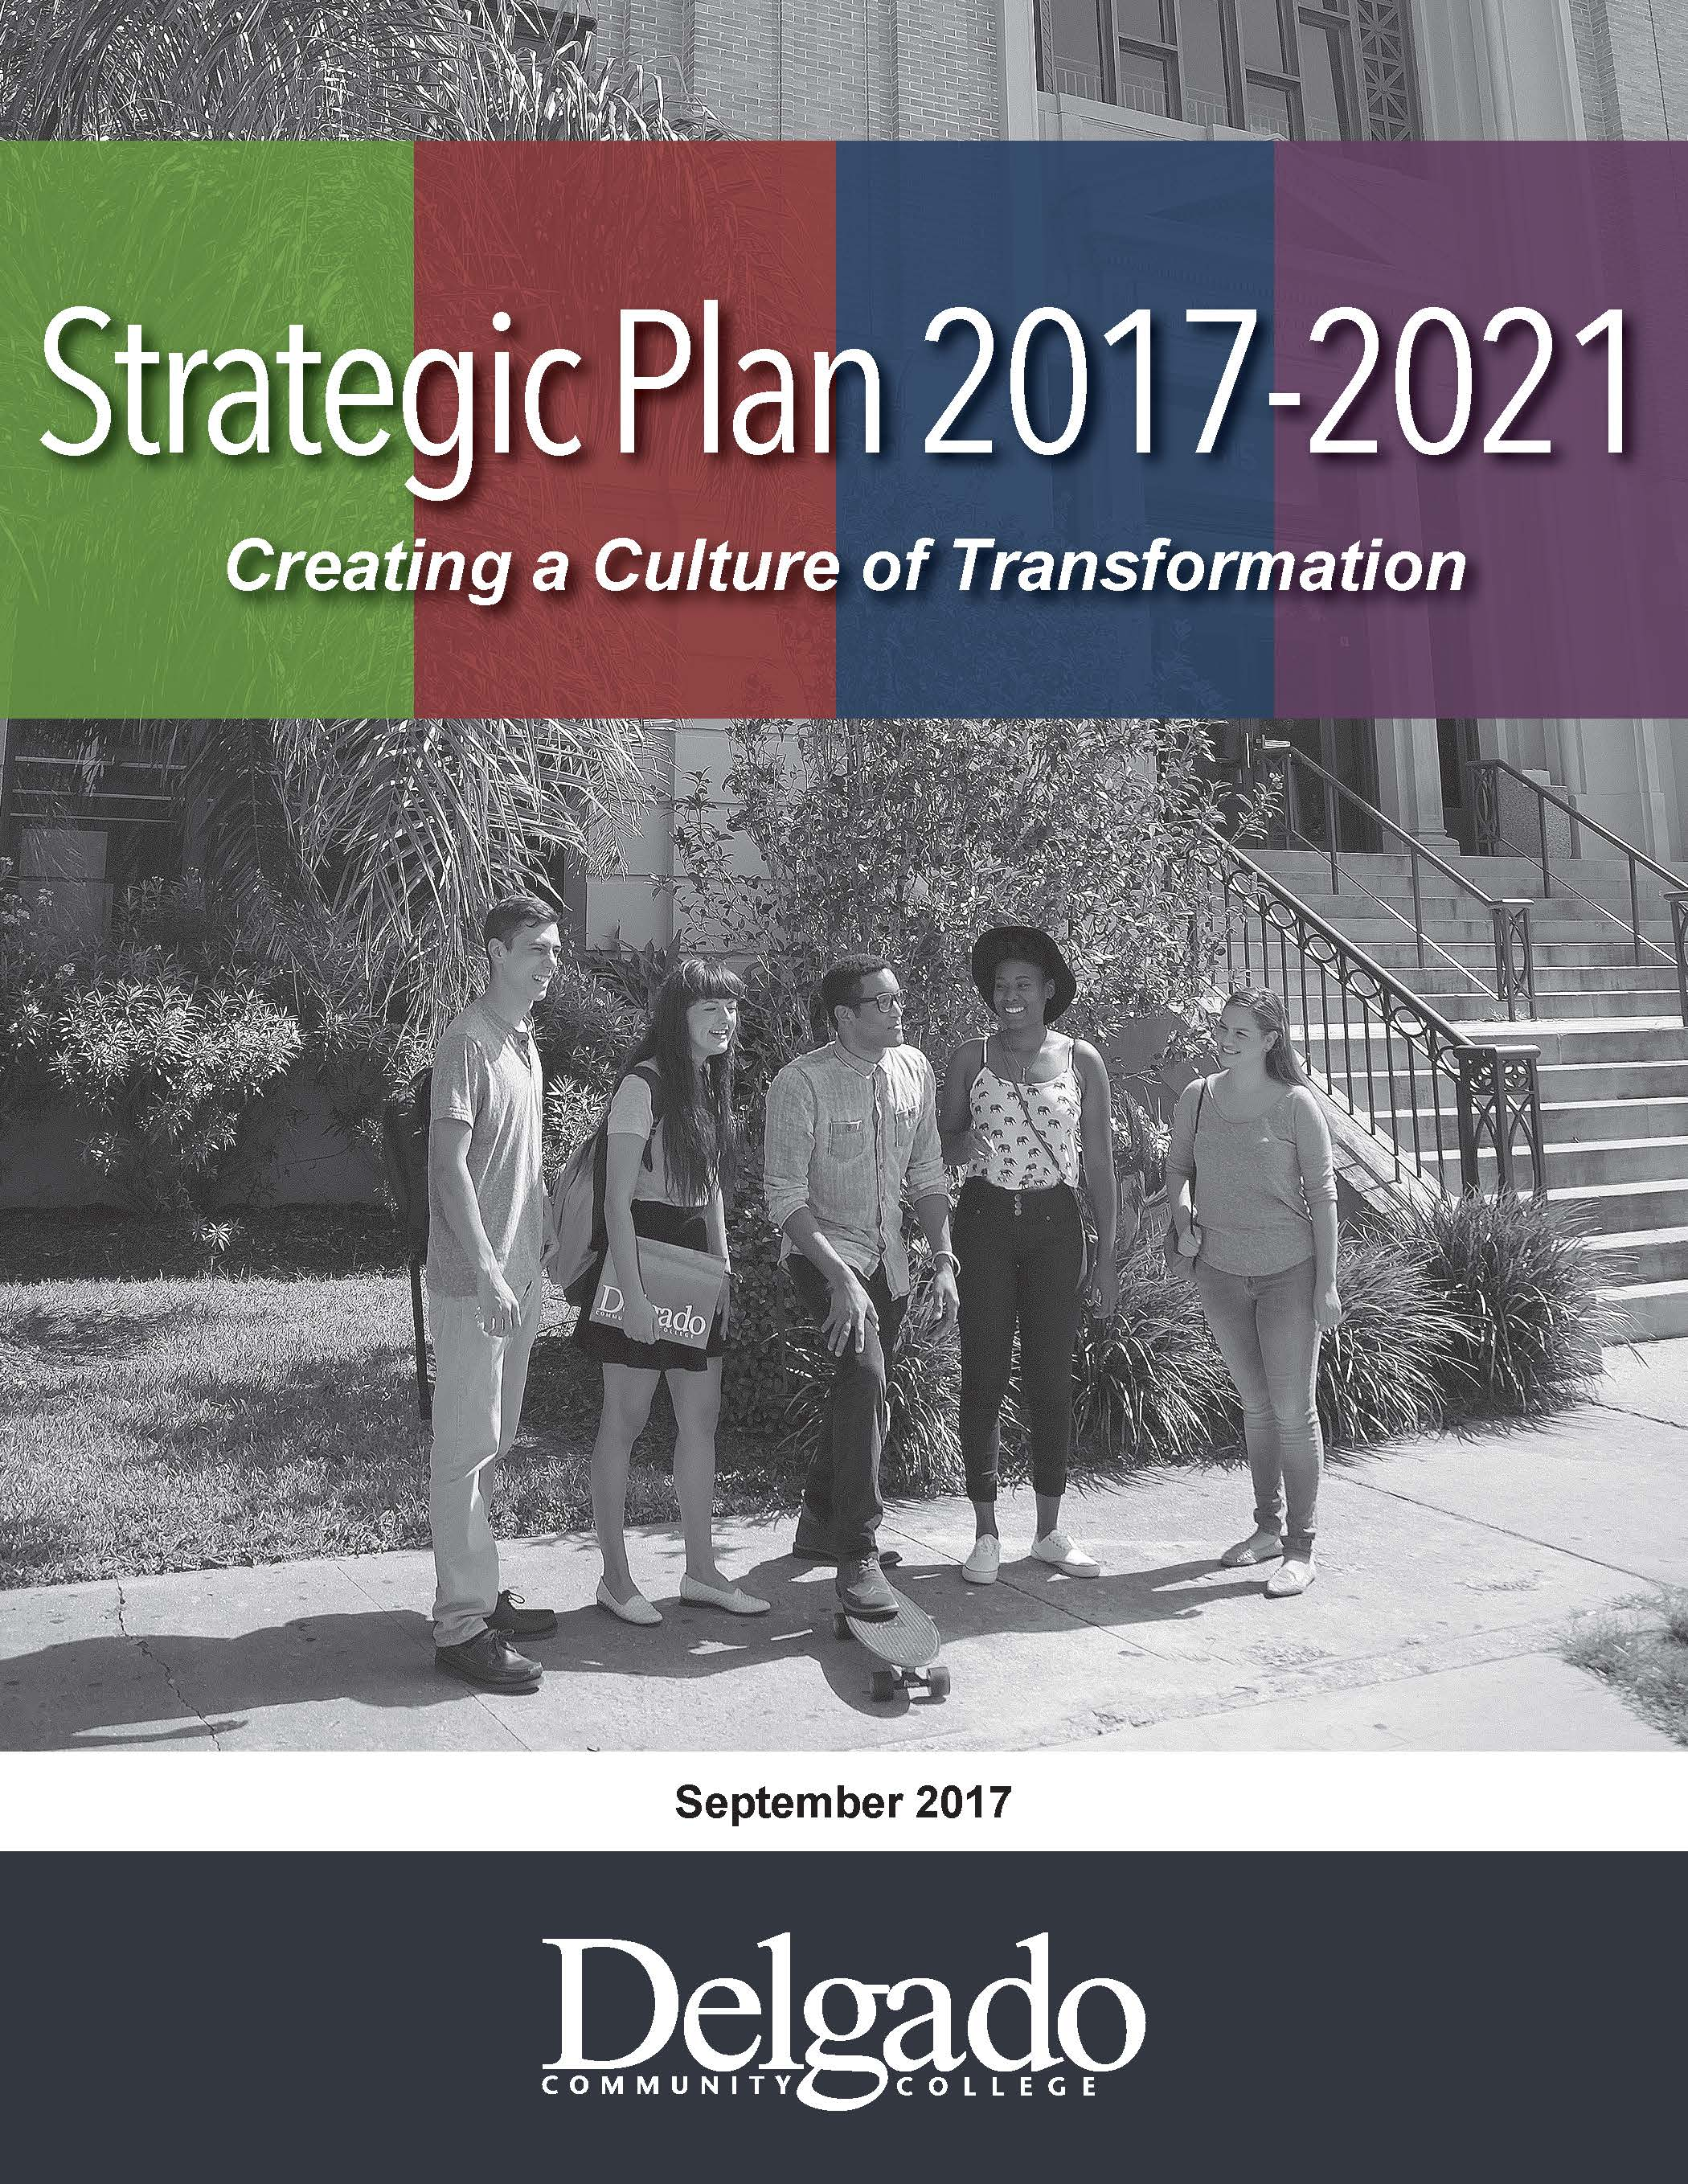 Cover of the 2017-2021 Strategic Plan document